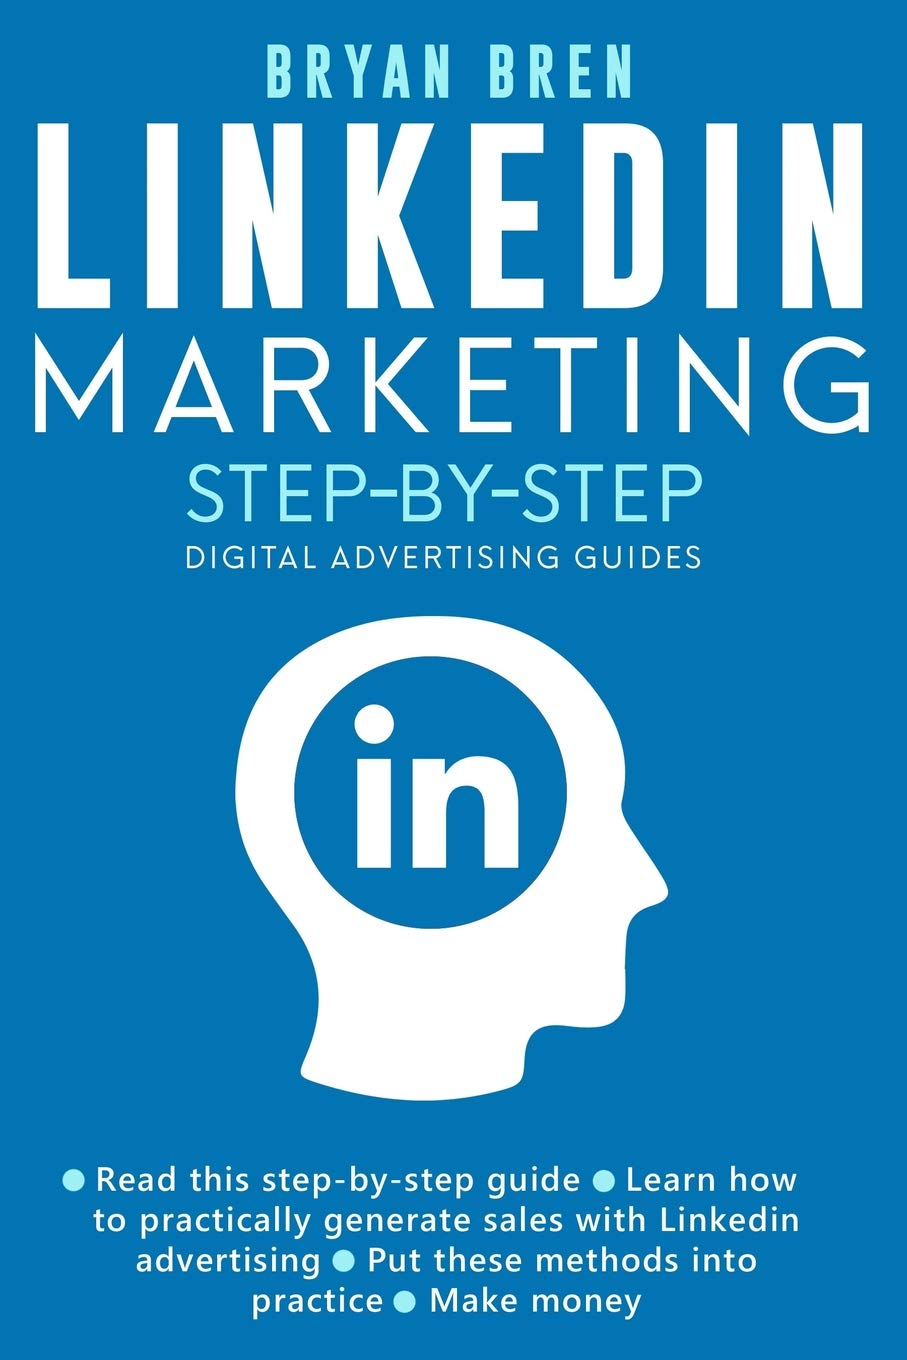 Linkedin Marketing Step-By-Step: The Guide To Linkedin Advertising That Will Teach You How To Sell Anything Through Linkedin - Learn How To Develop A Strategy And Grow Your Business: Bren, Bryan: 9781076906380: